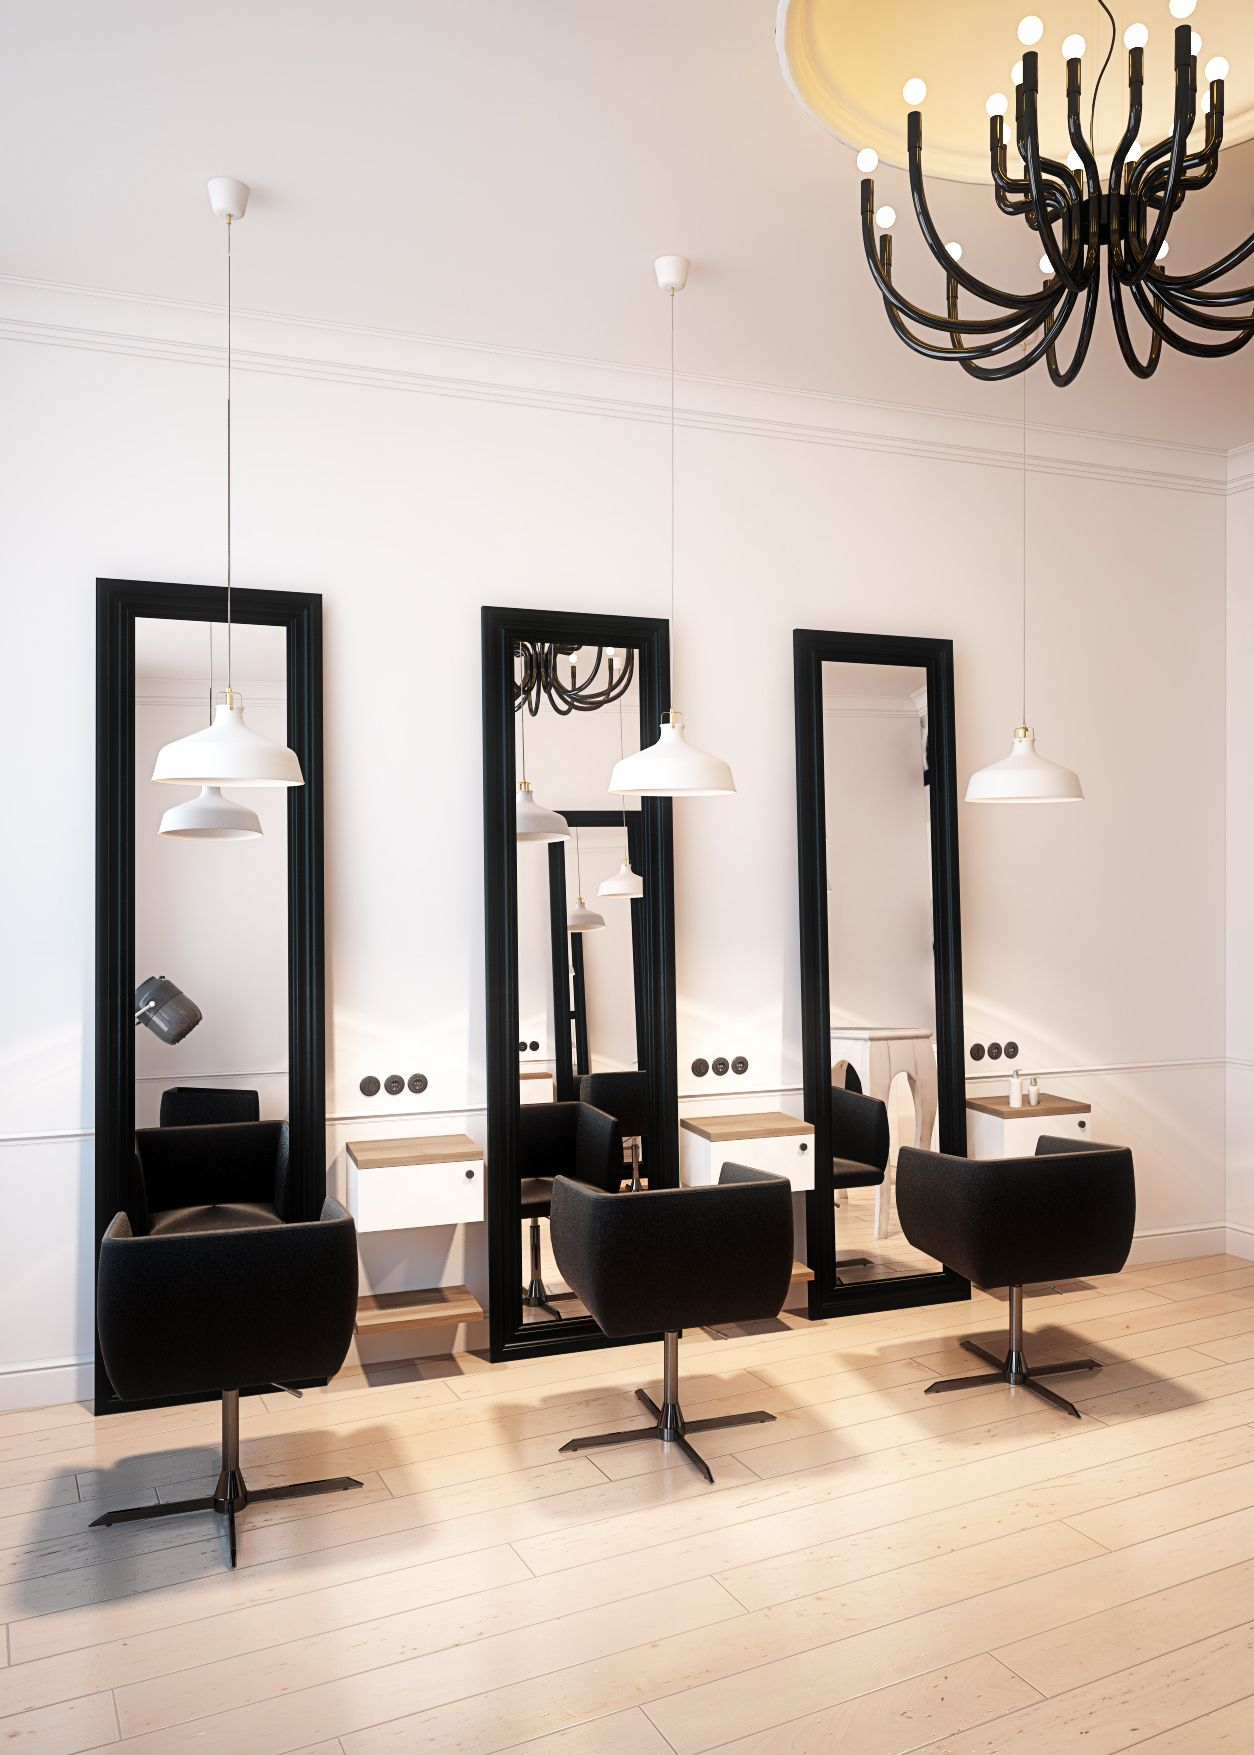 Hairdresser interior design in bytom poland archi group for Interieur design salon